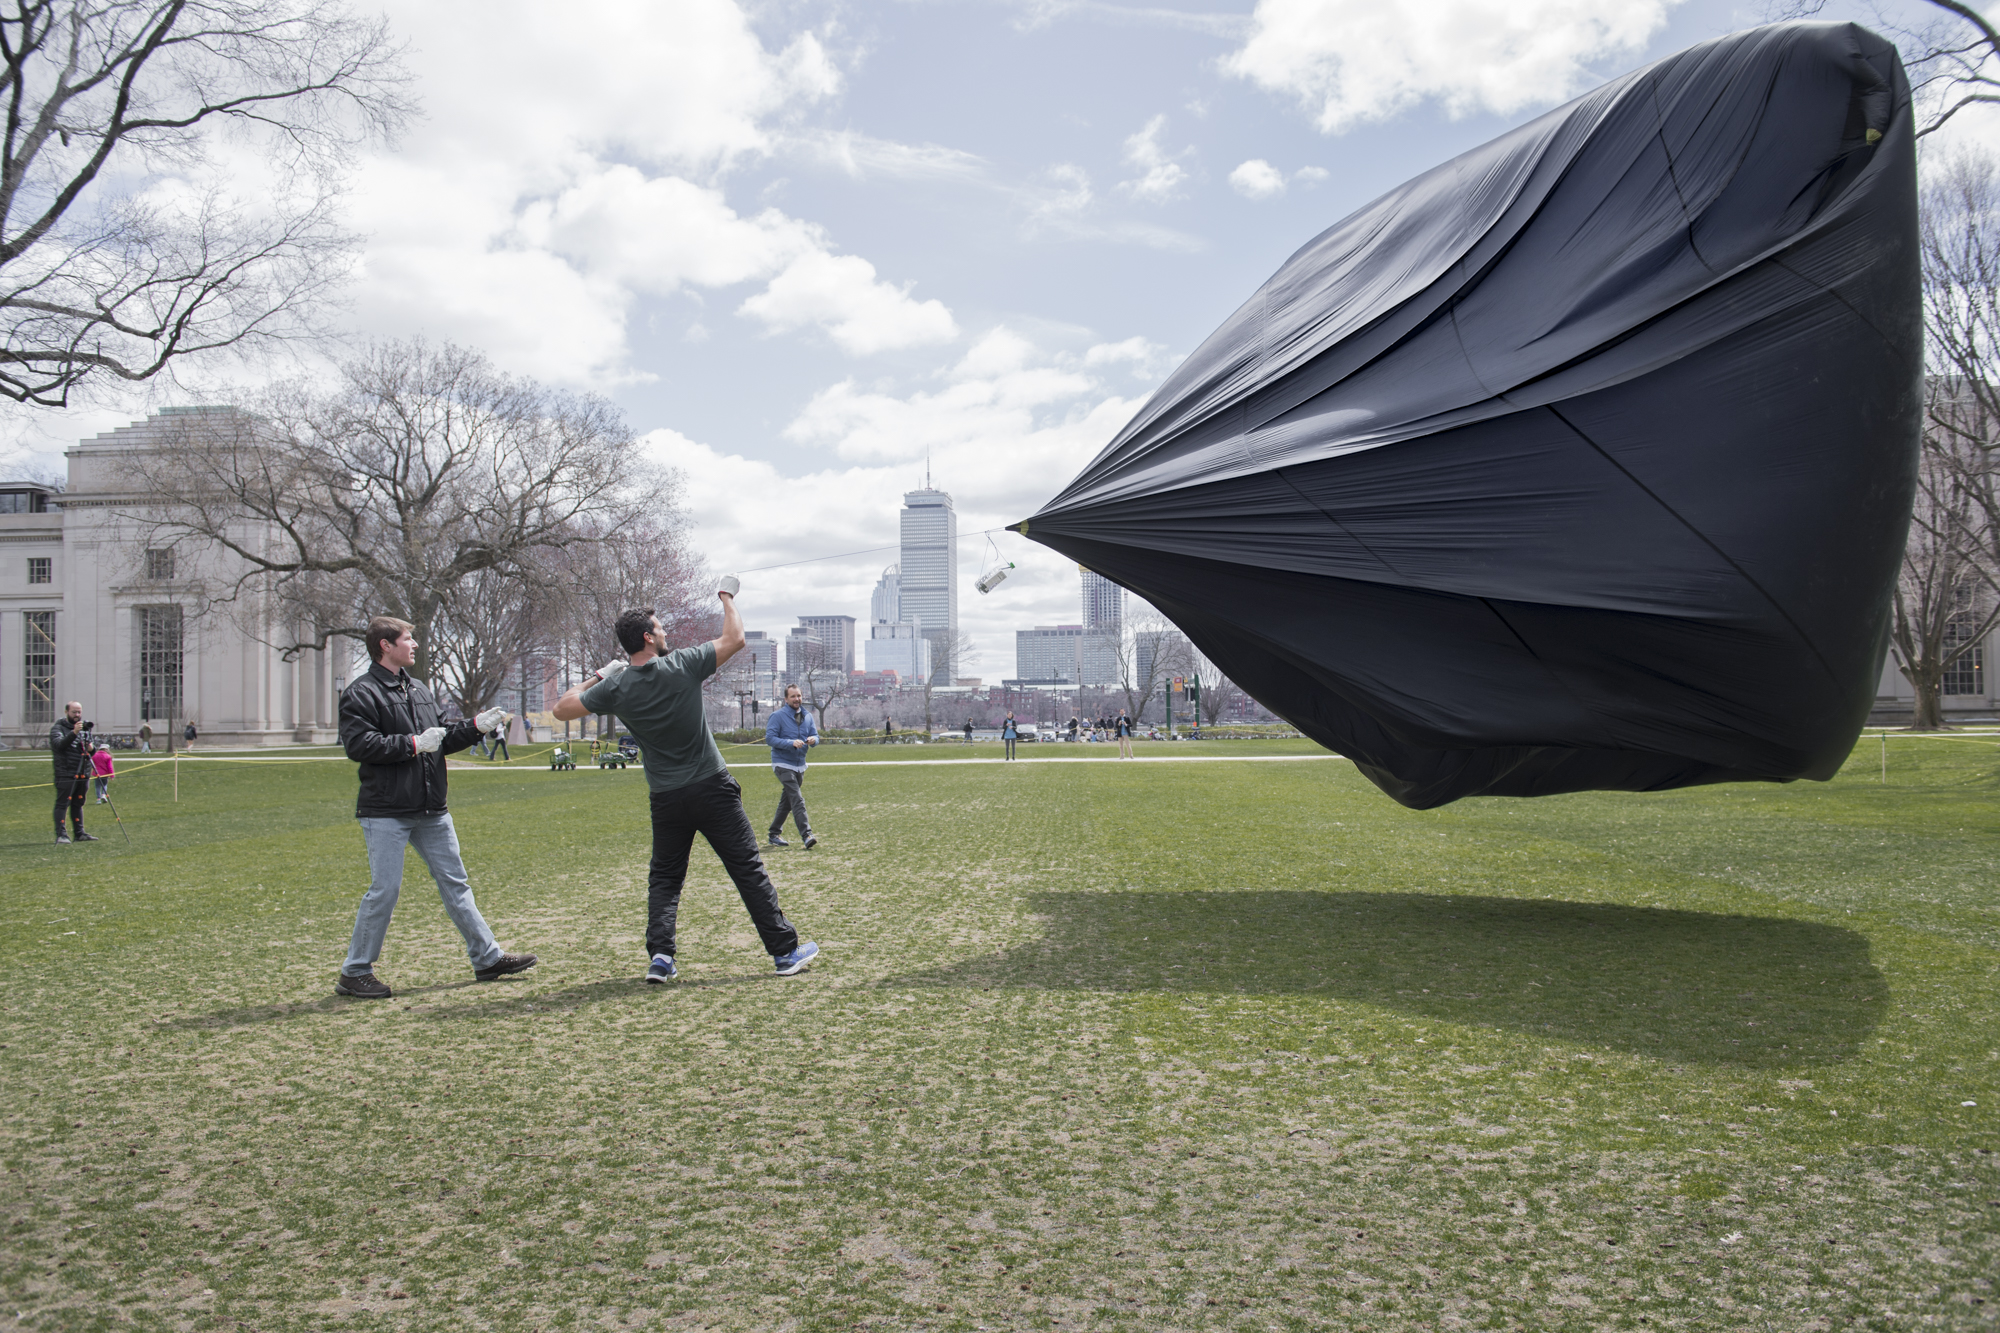 Sun lift and wind create huge forces, gloves are used to protect the Aerocene pilot's hands